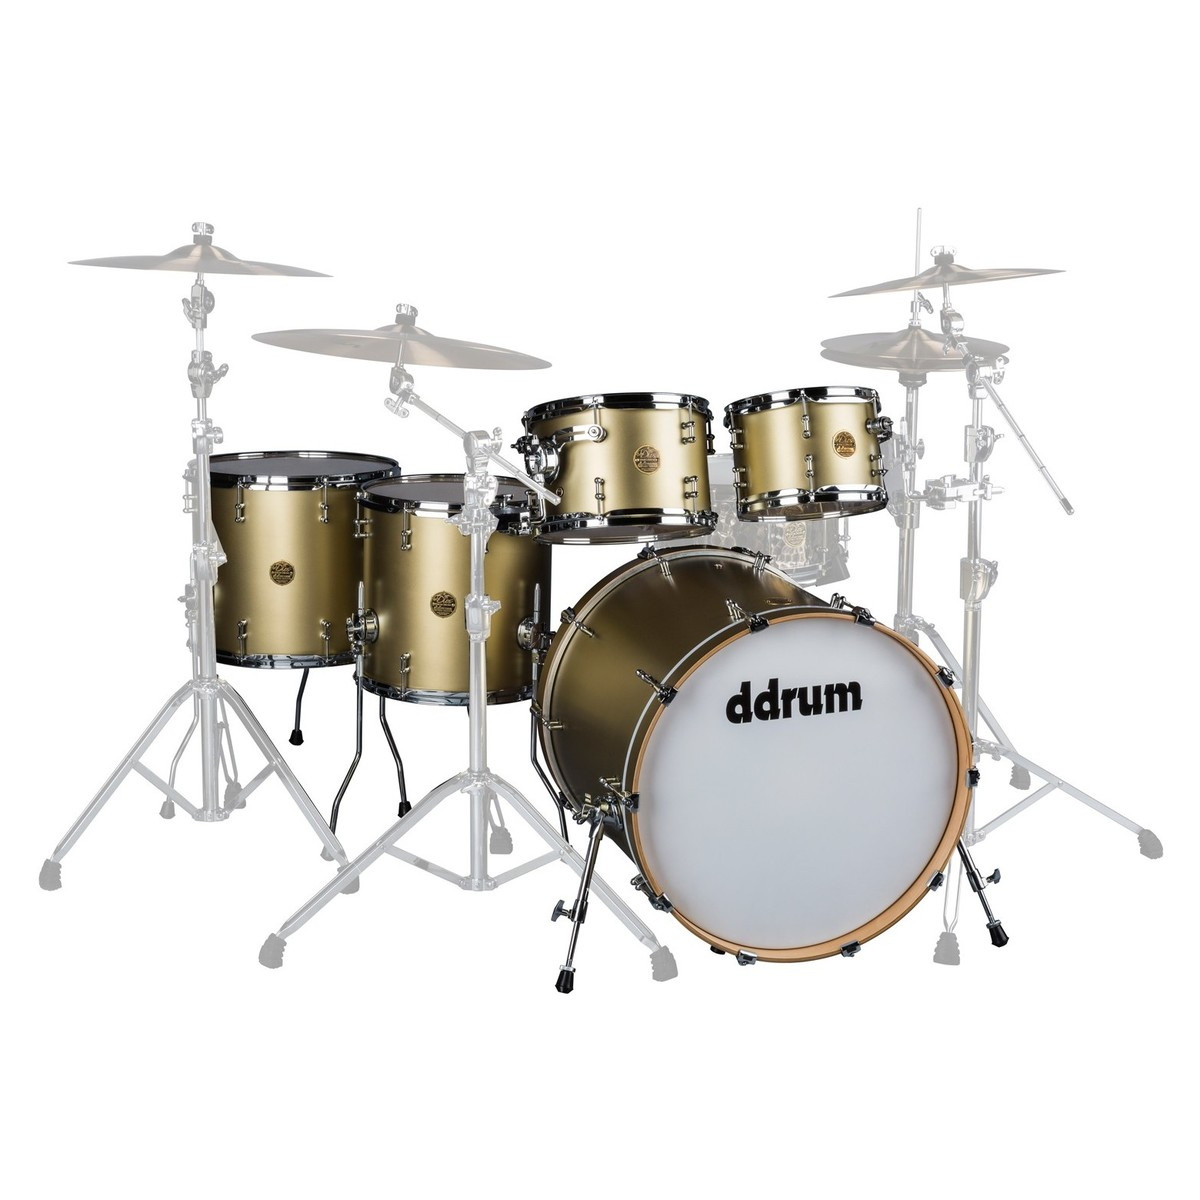 7c55a14e583c DDrum Dios Maple 22   5pc Shell Pack